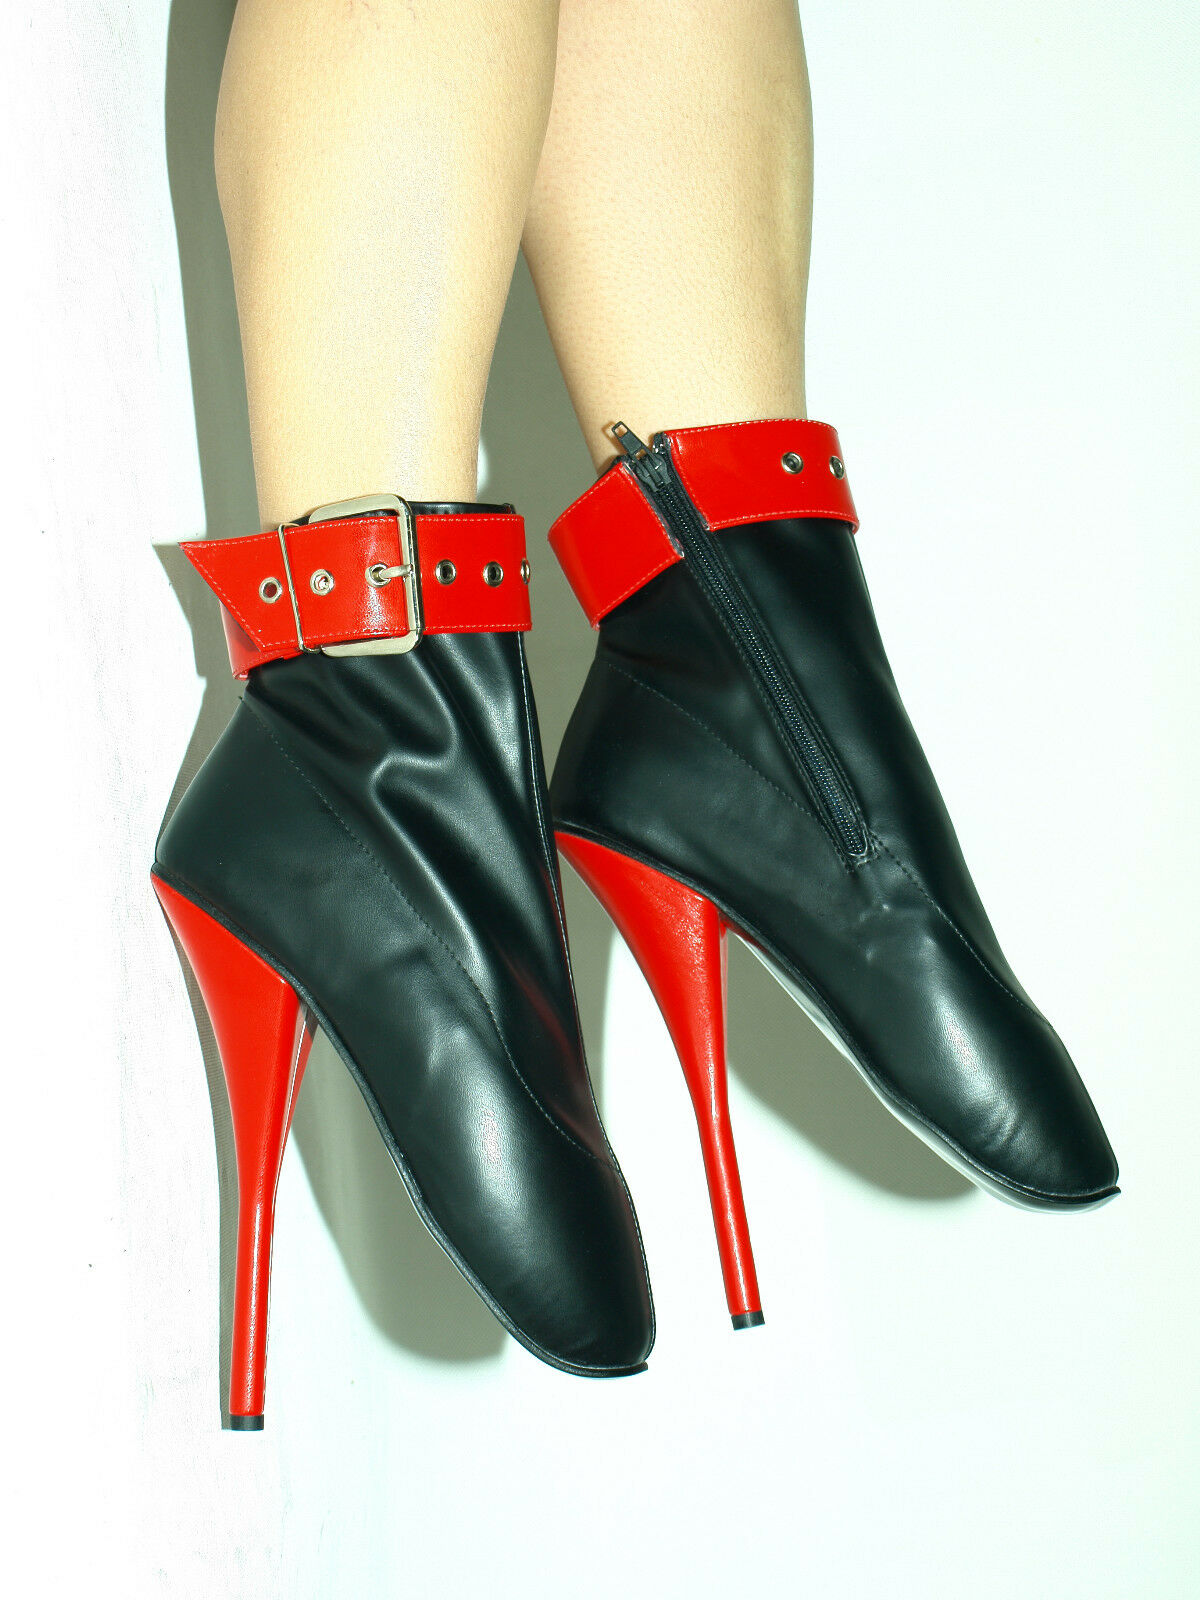 BLACK-ROT IMITATION IMITATION BLACK-ROT LEATHER BALLET Stiefel SIZE 7-12- HEELS-8,5